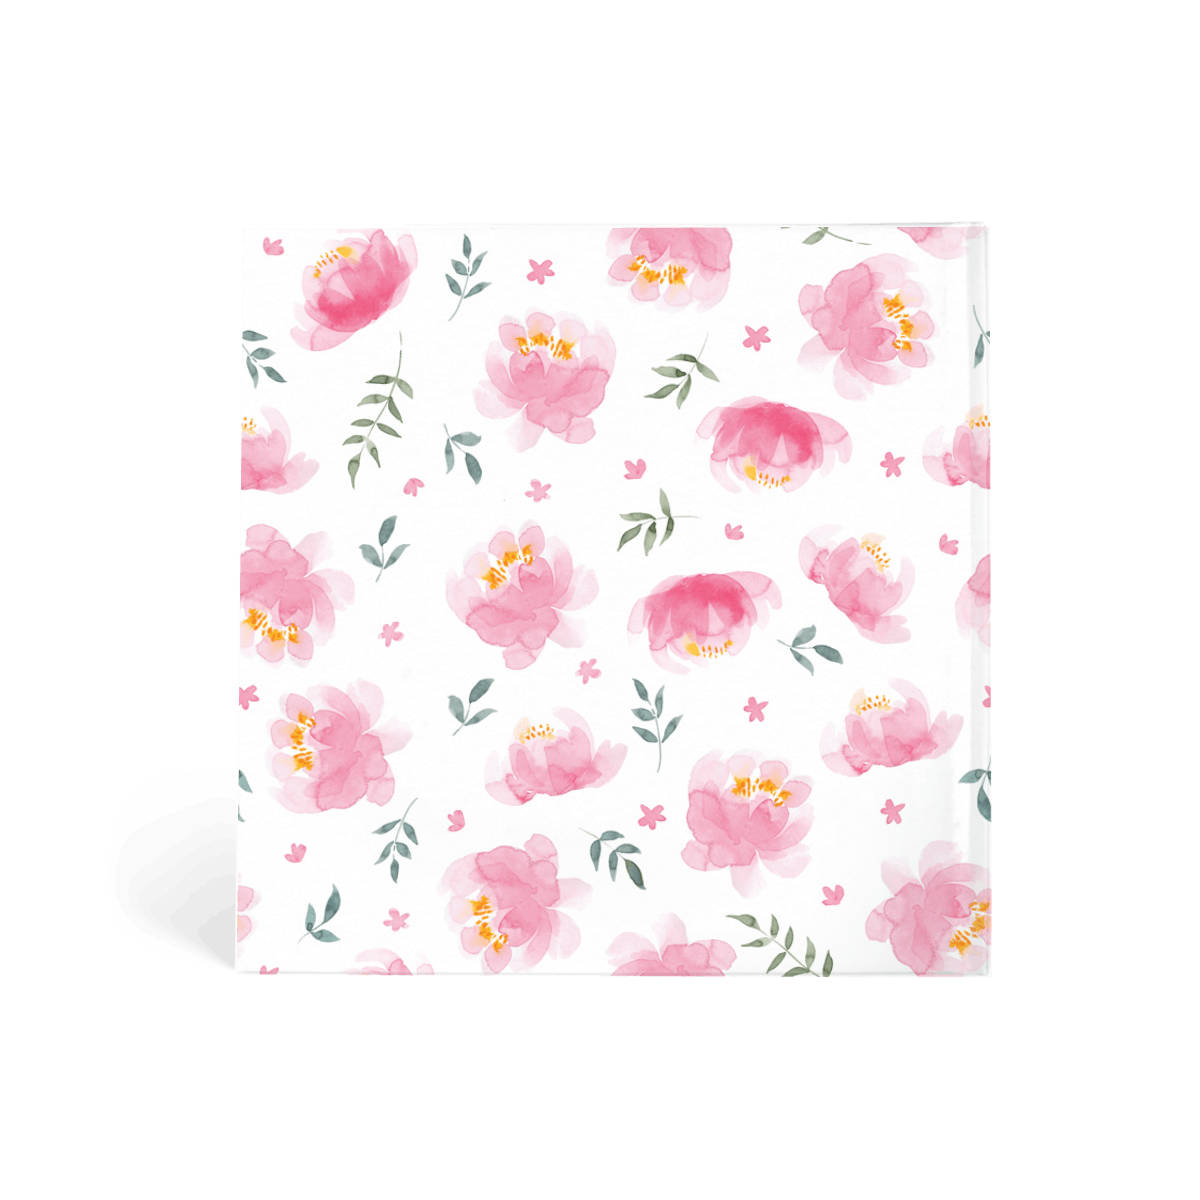 Https%3a%2f%2fwww.papier.com%2fproduct image%2f42397%2f24%2fpeonies 10849 back 1533118751.png?ixlib=rb 1.1